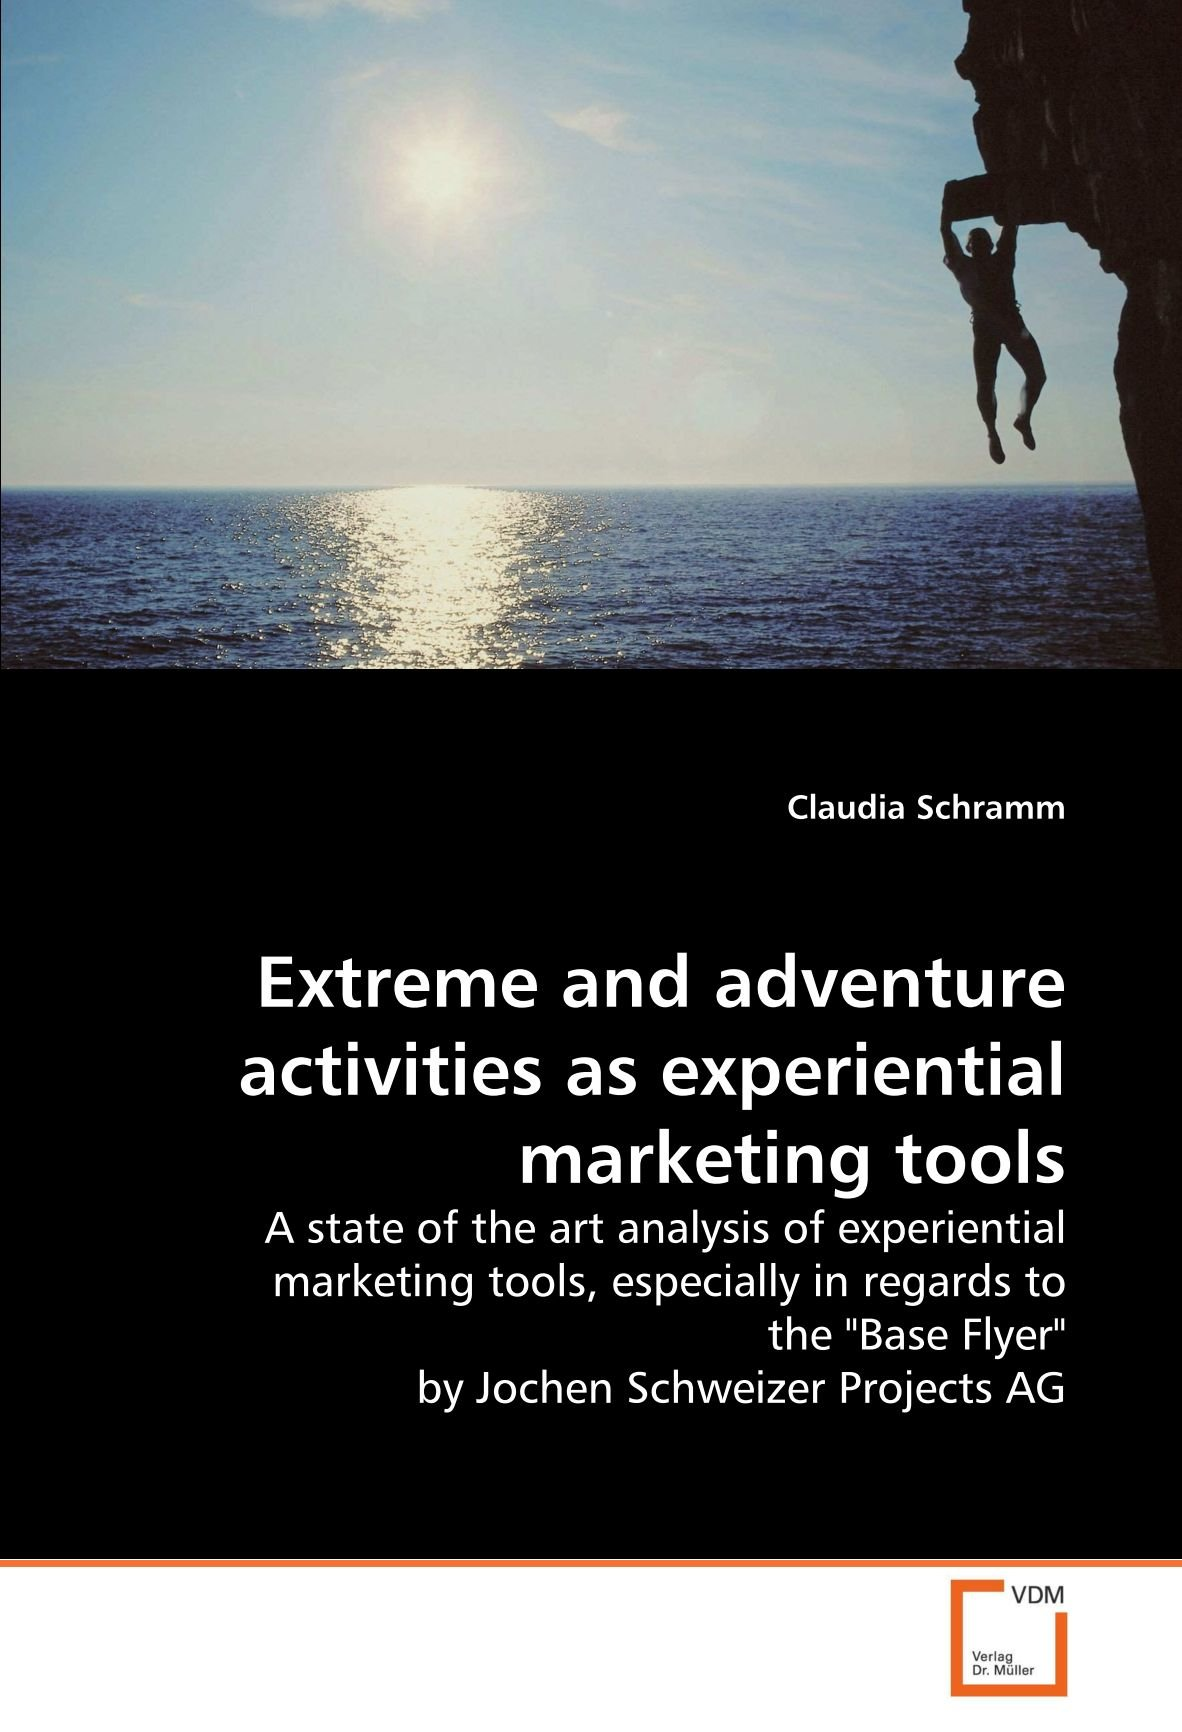 "Extreme and adventure activities as experiential marketing tools: A state of the art analysis of experiential marketing tools, especially in regards to the ""Base Flyer"" by Jochen Schweizer Projects AG PDF"